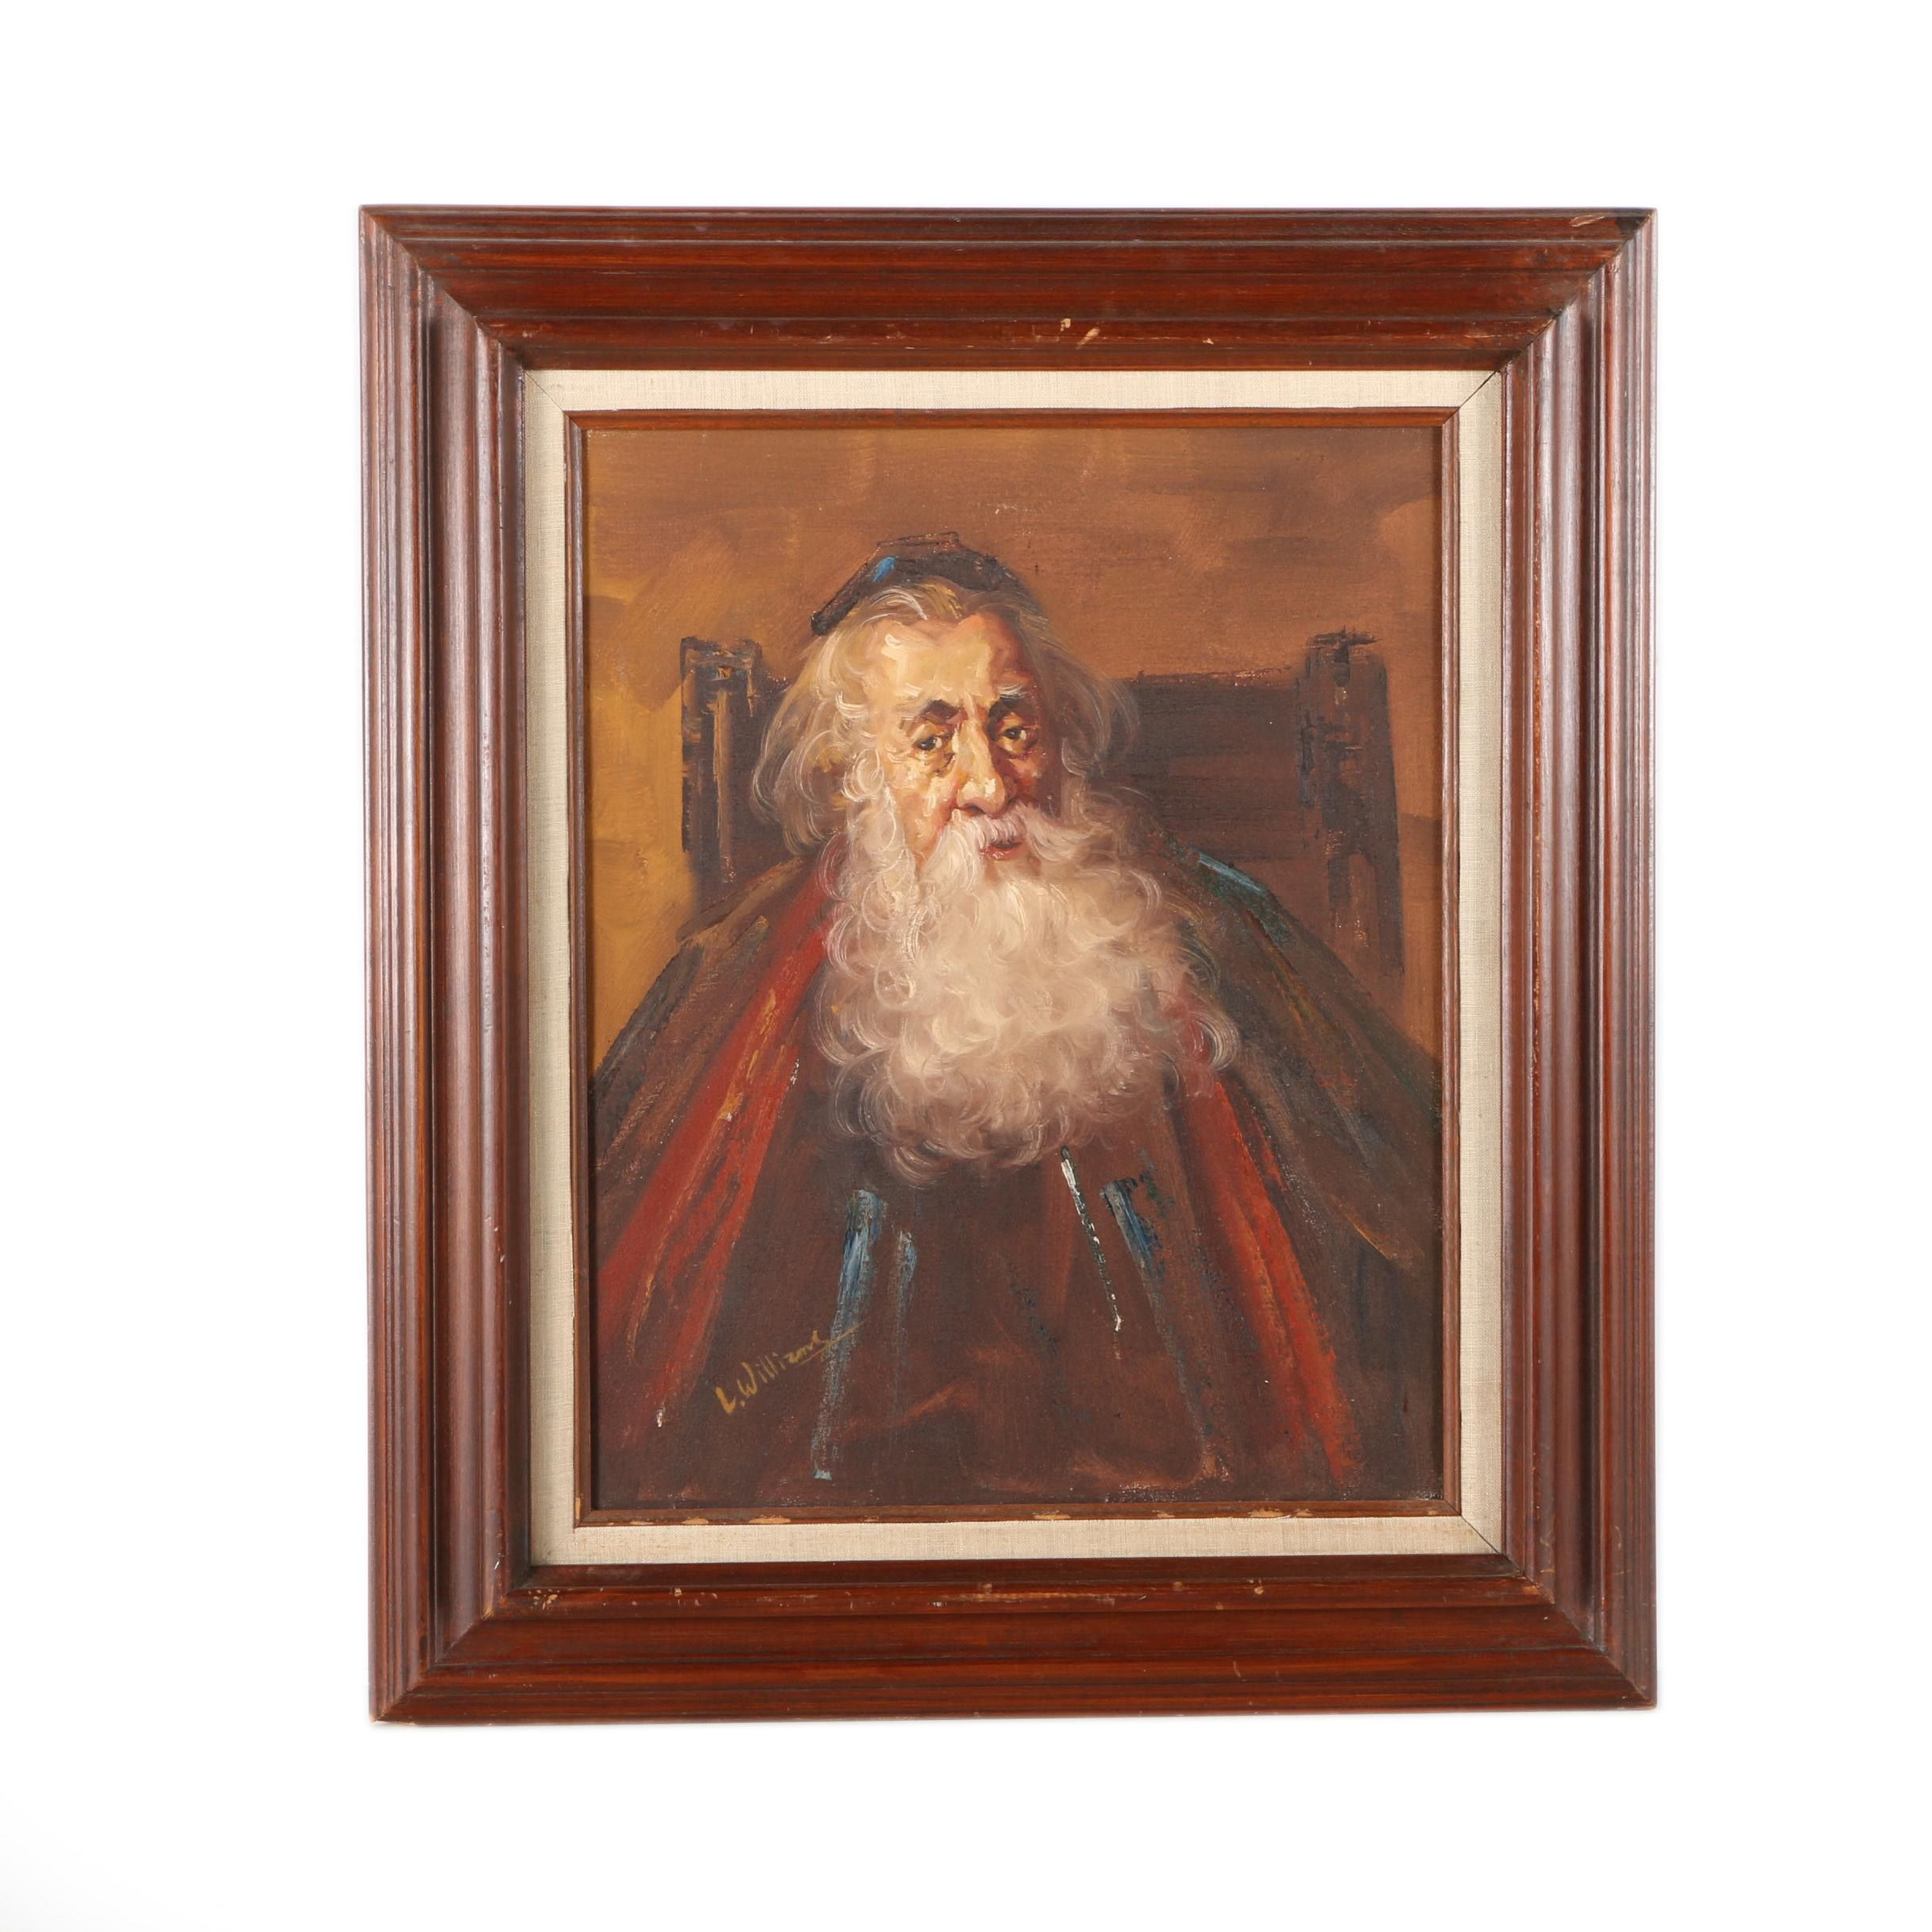 L. Williams Oil Painting on Canvas Portrait of Man in Robes